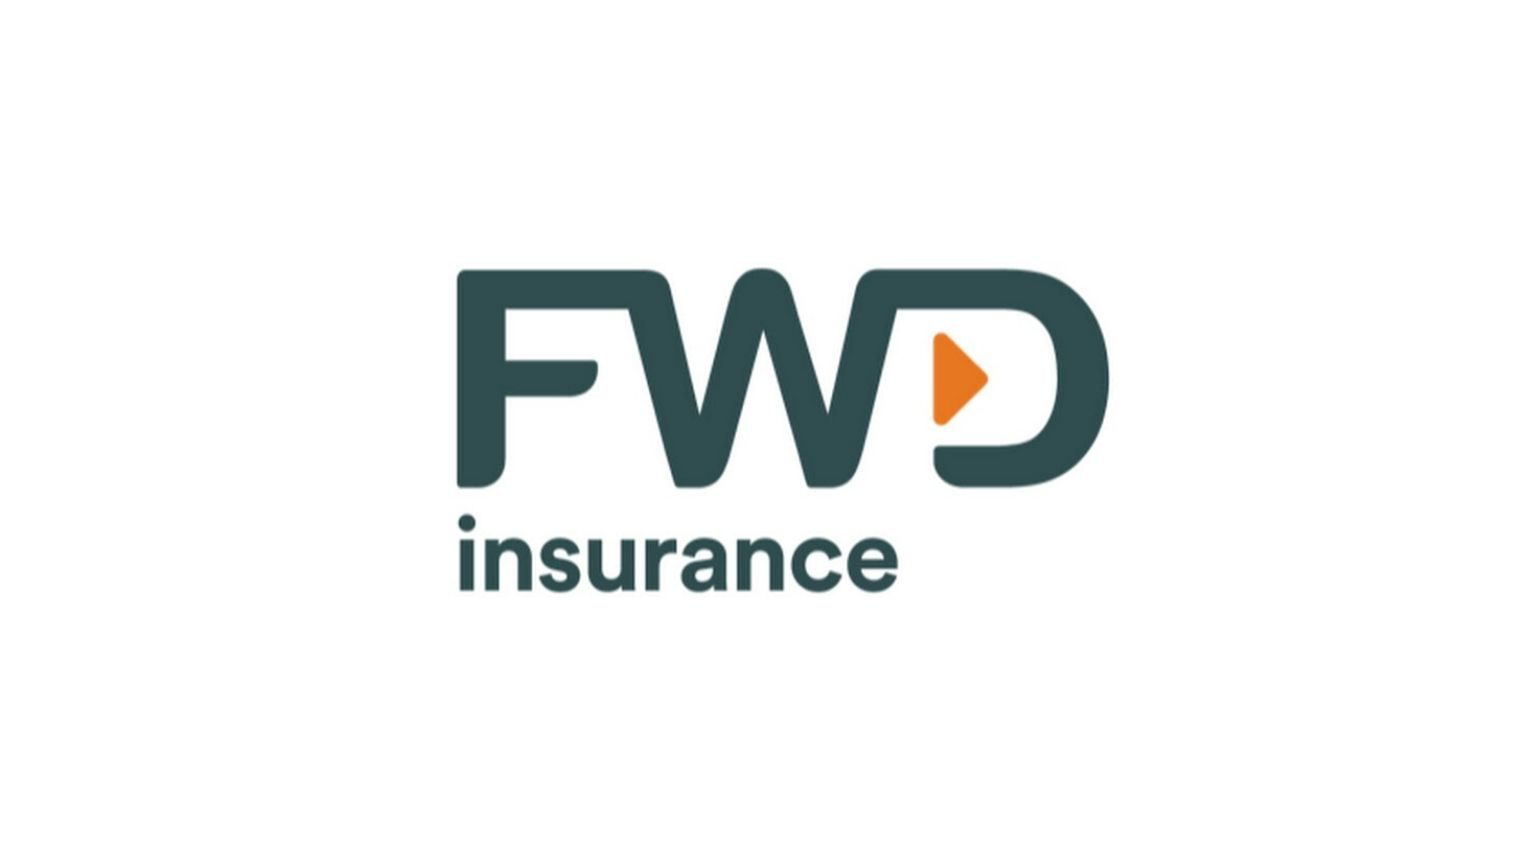 FWD car insurance comparison and reviews | Finder Singapore